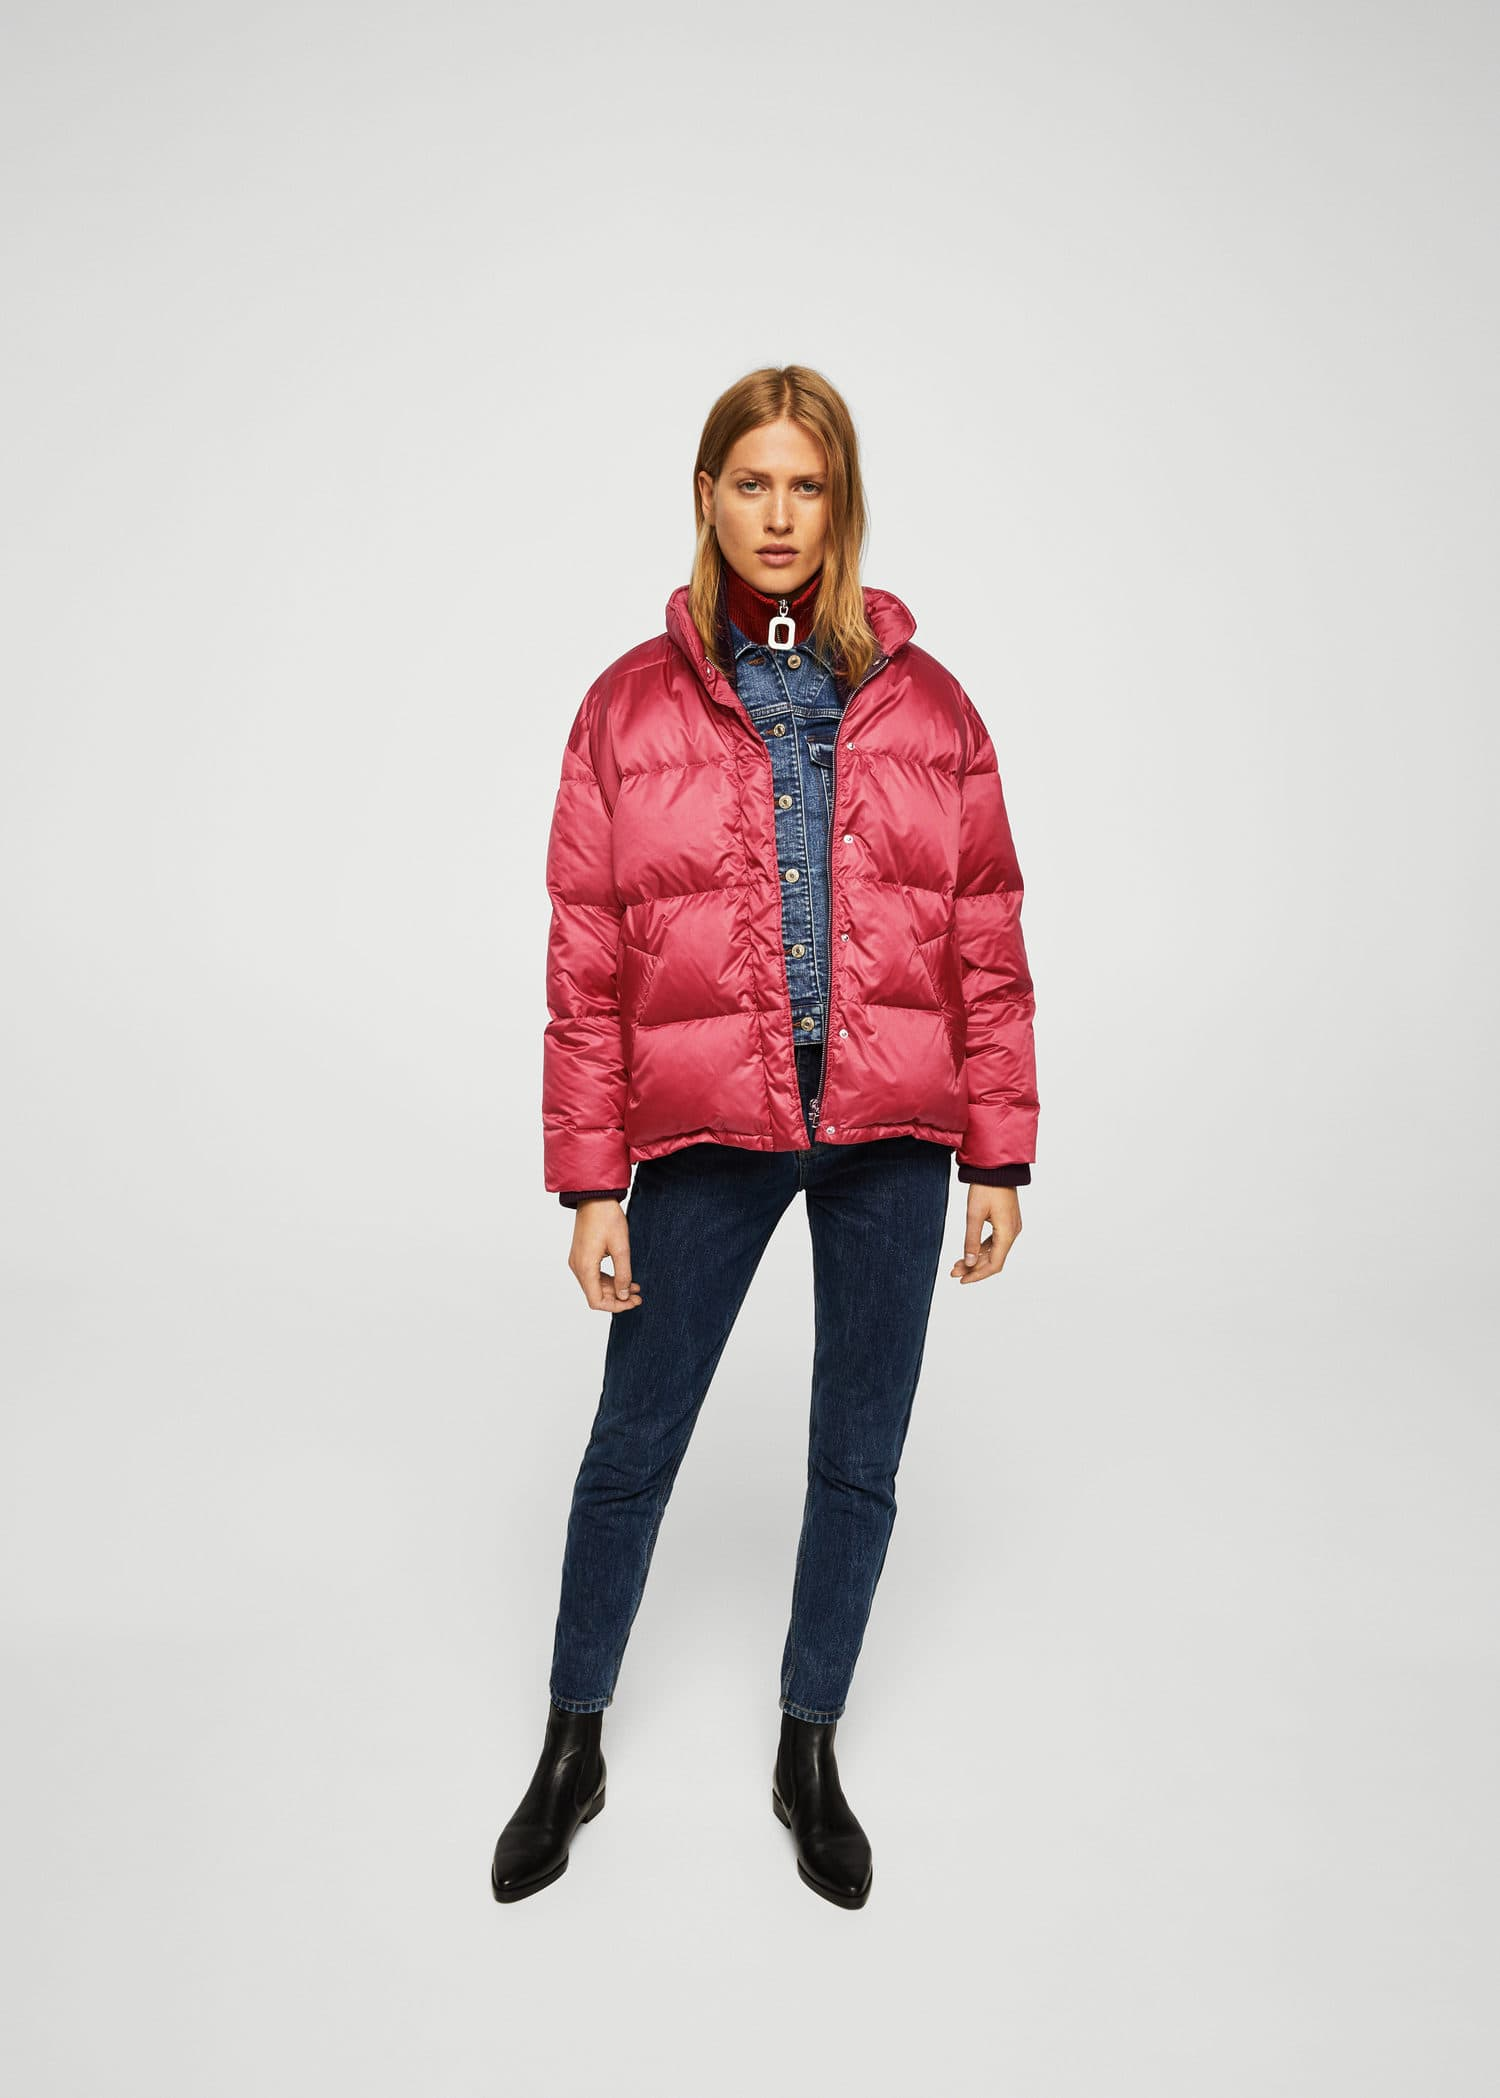 Oversized steppanorak Damen in 2019 | Mäntel frauen